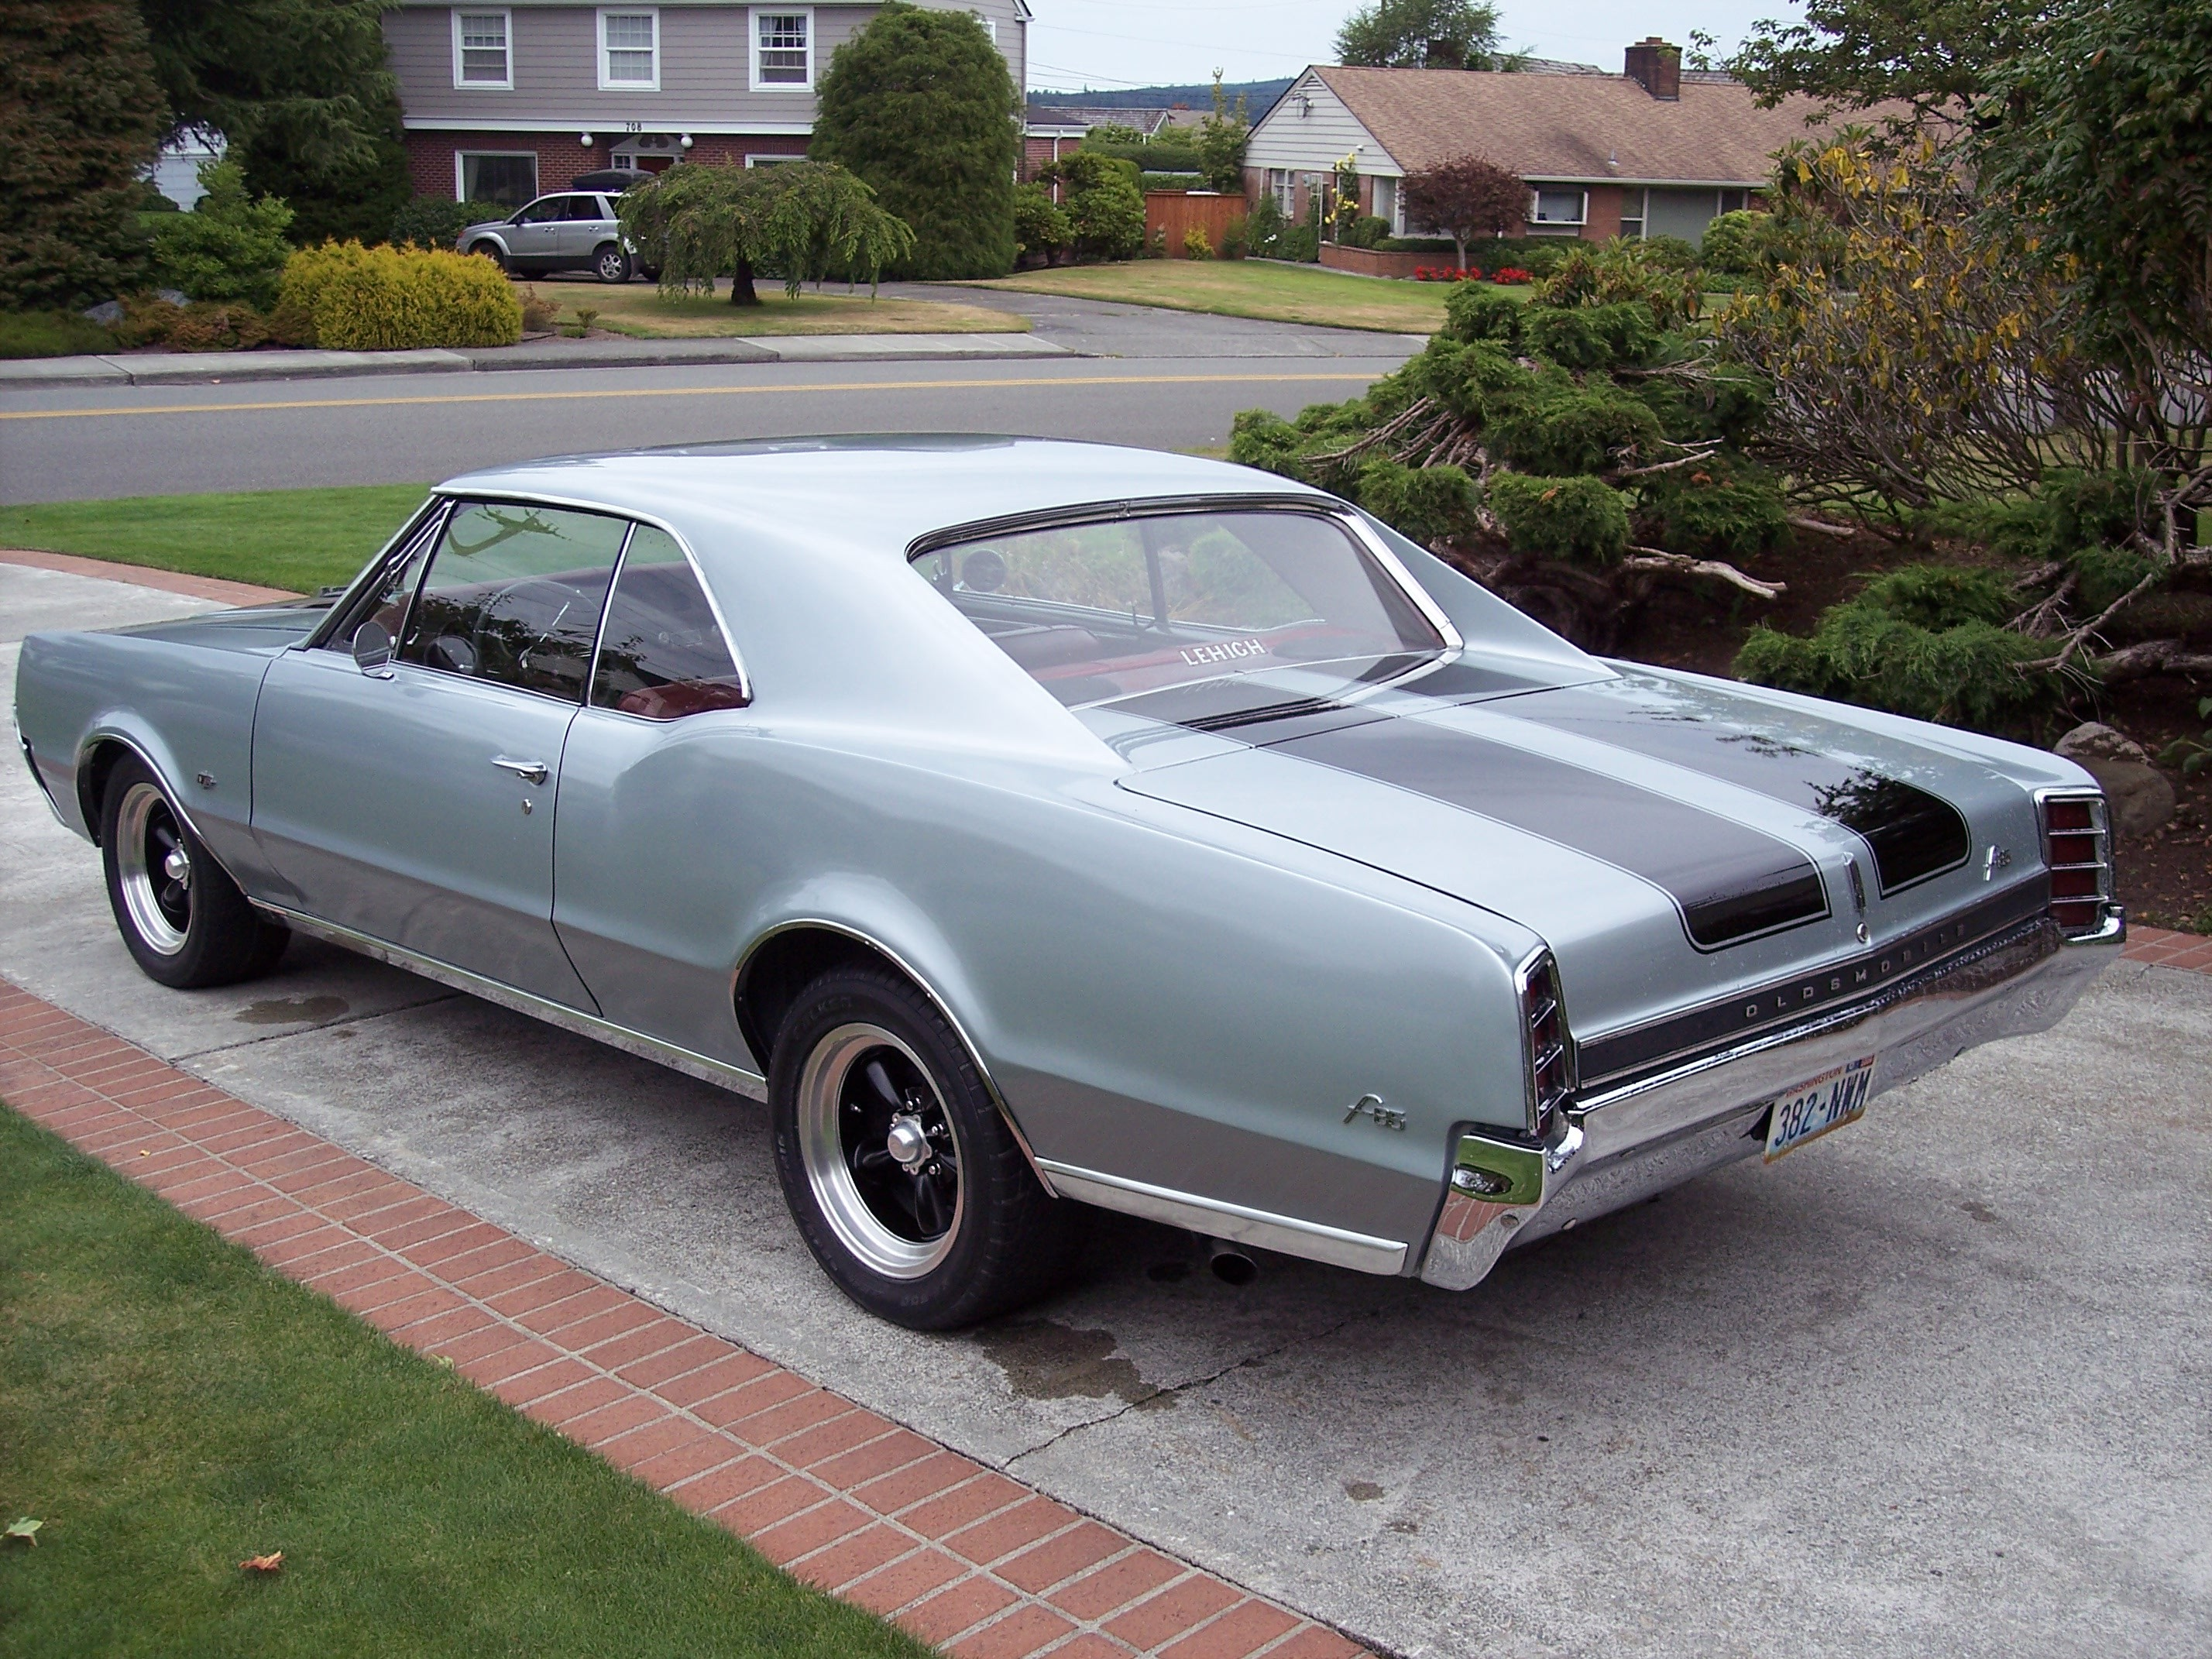 66Olds 1966 Oldsmobile F-85 12846383